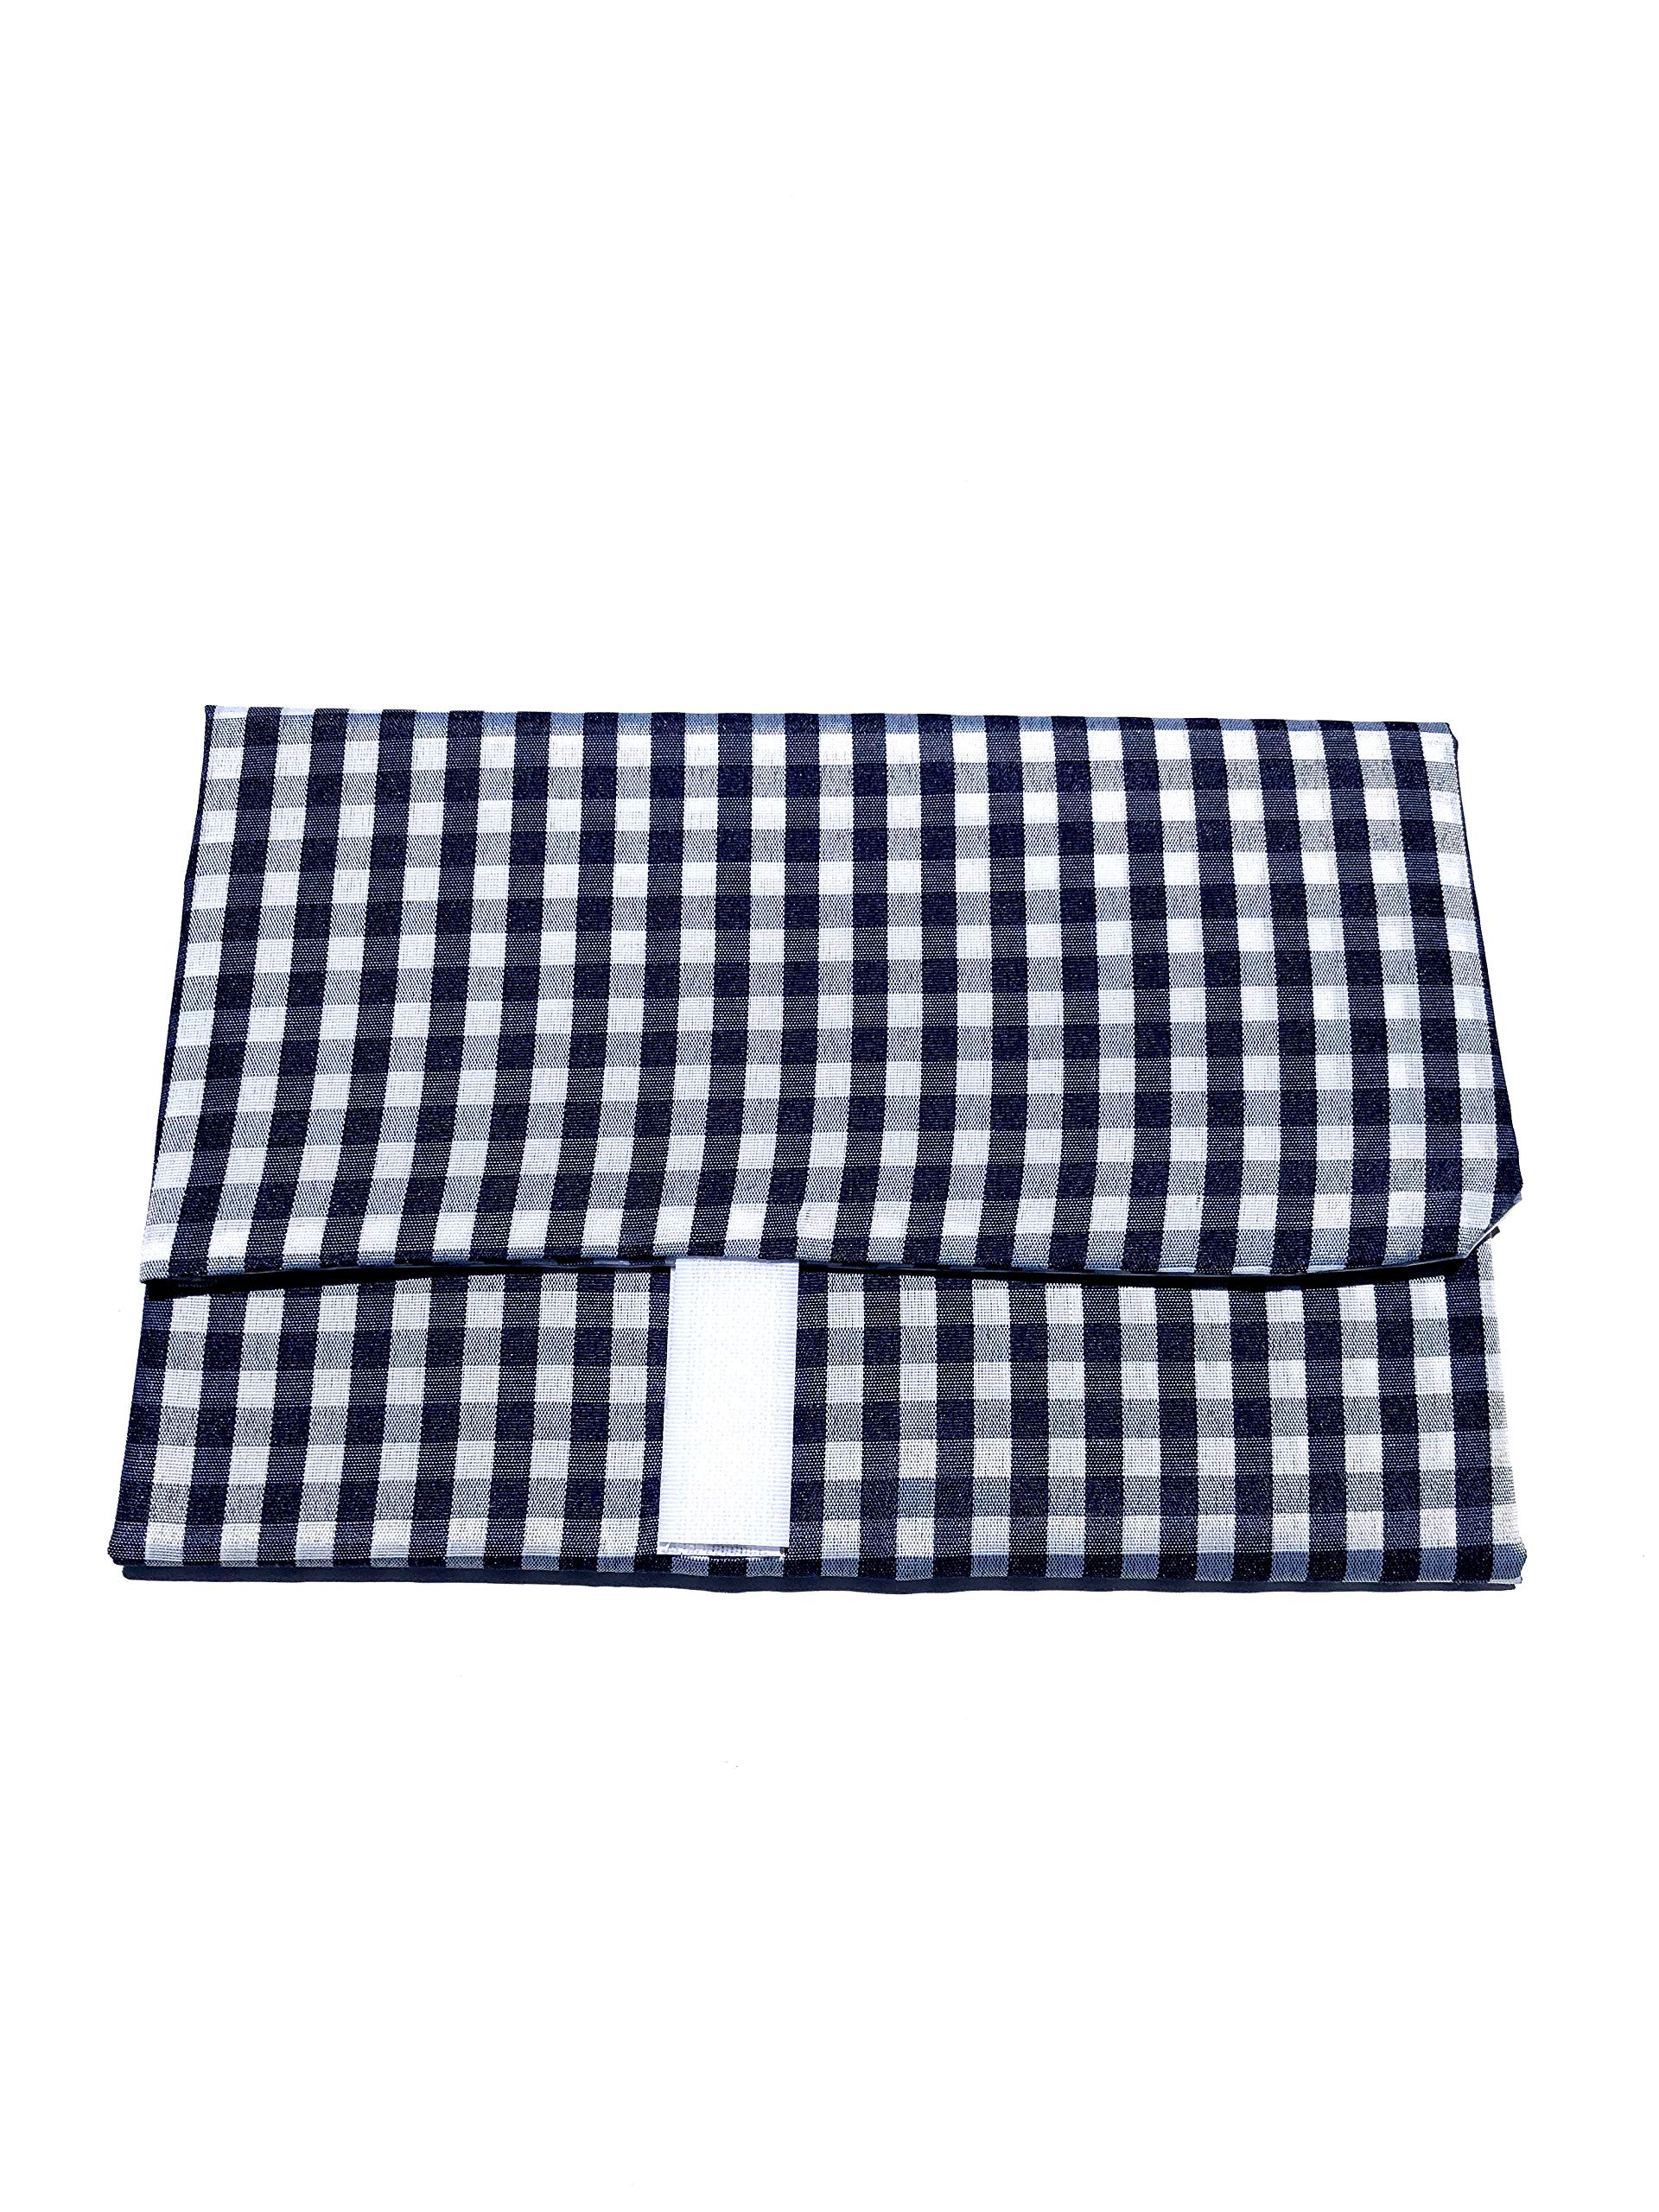 WRAP-N-MAT, Extra Large, Reusable Food Wrap and Placemat (Blue Gingham)